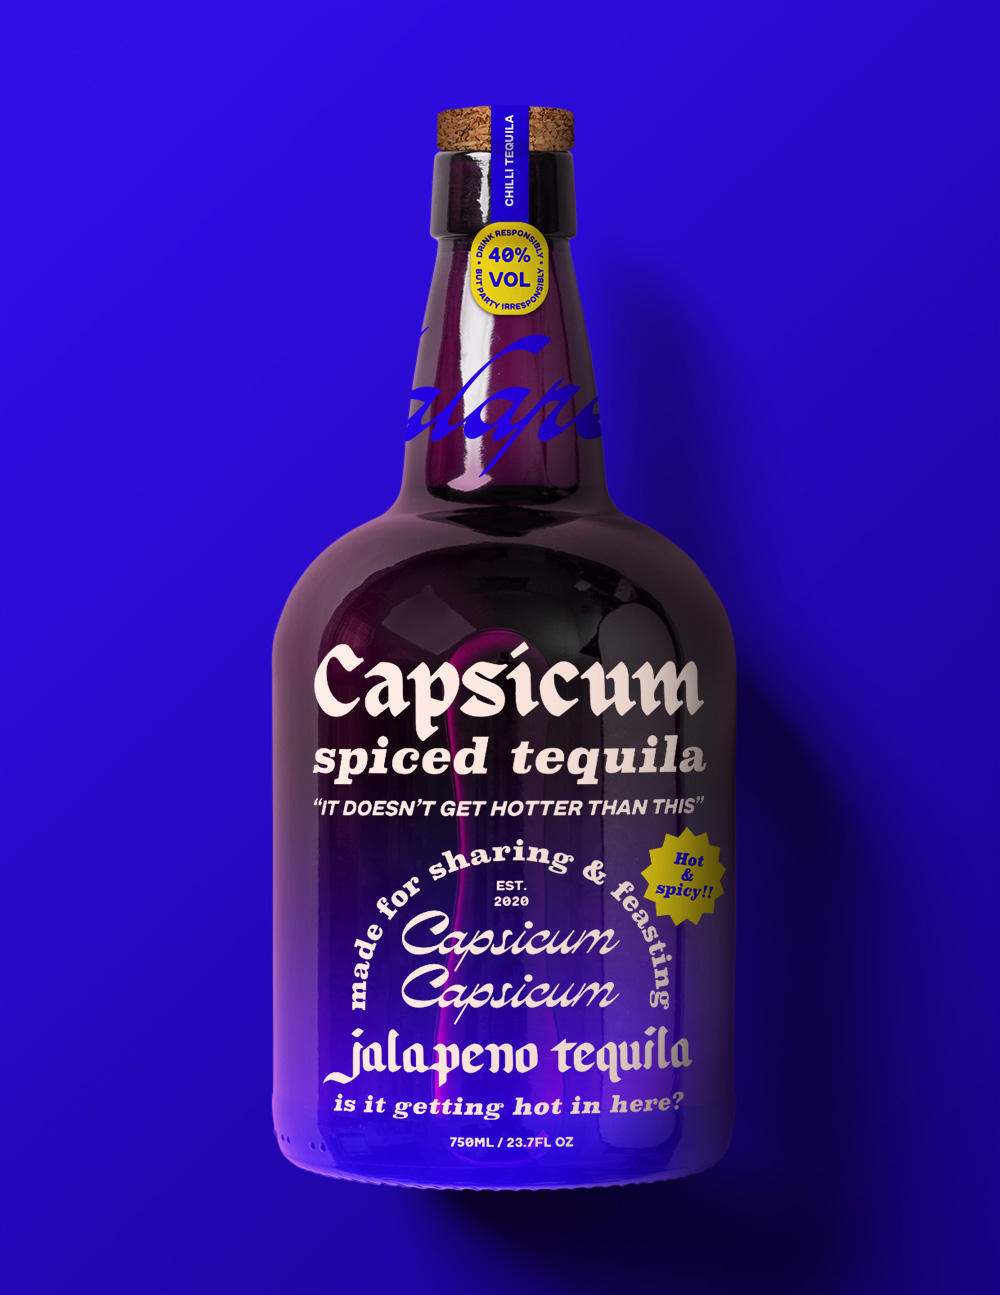 a blue tequila bottle which reads 'capsicium spiced tequila'